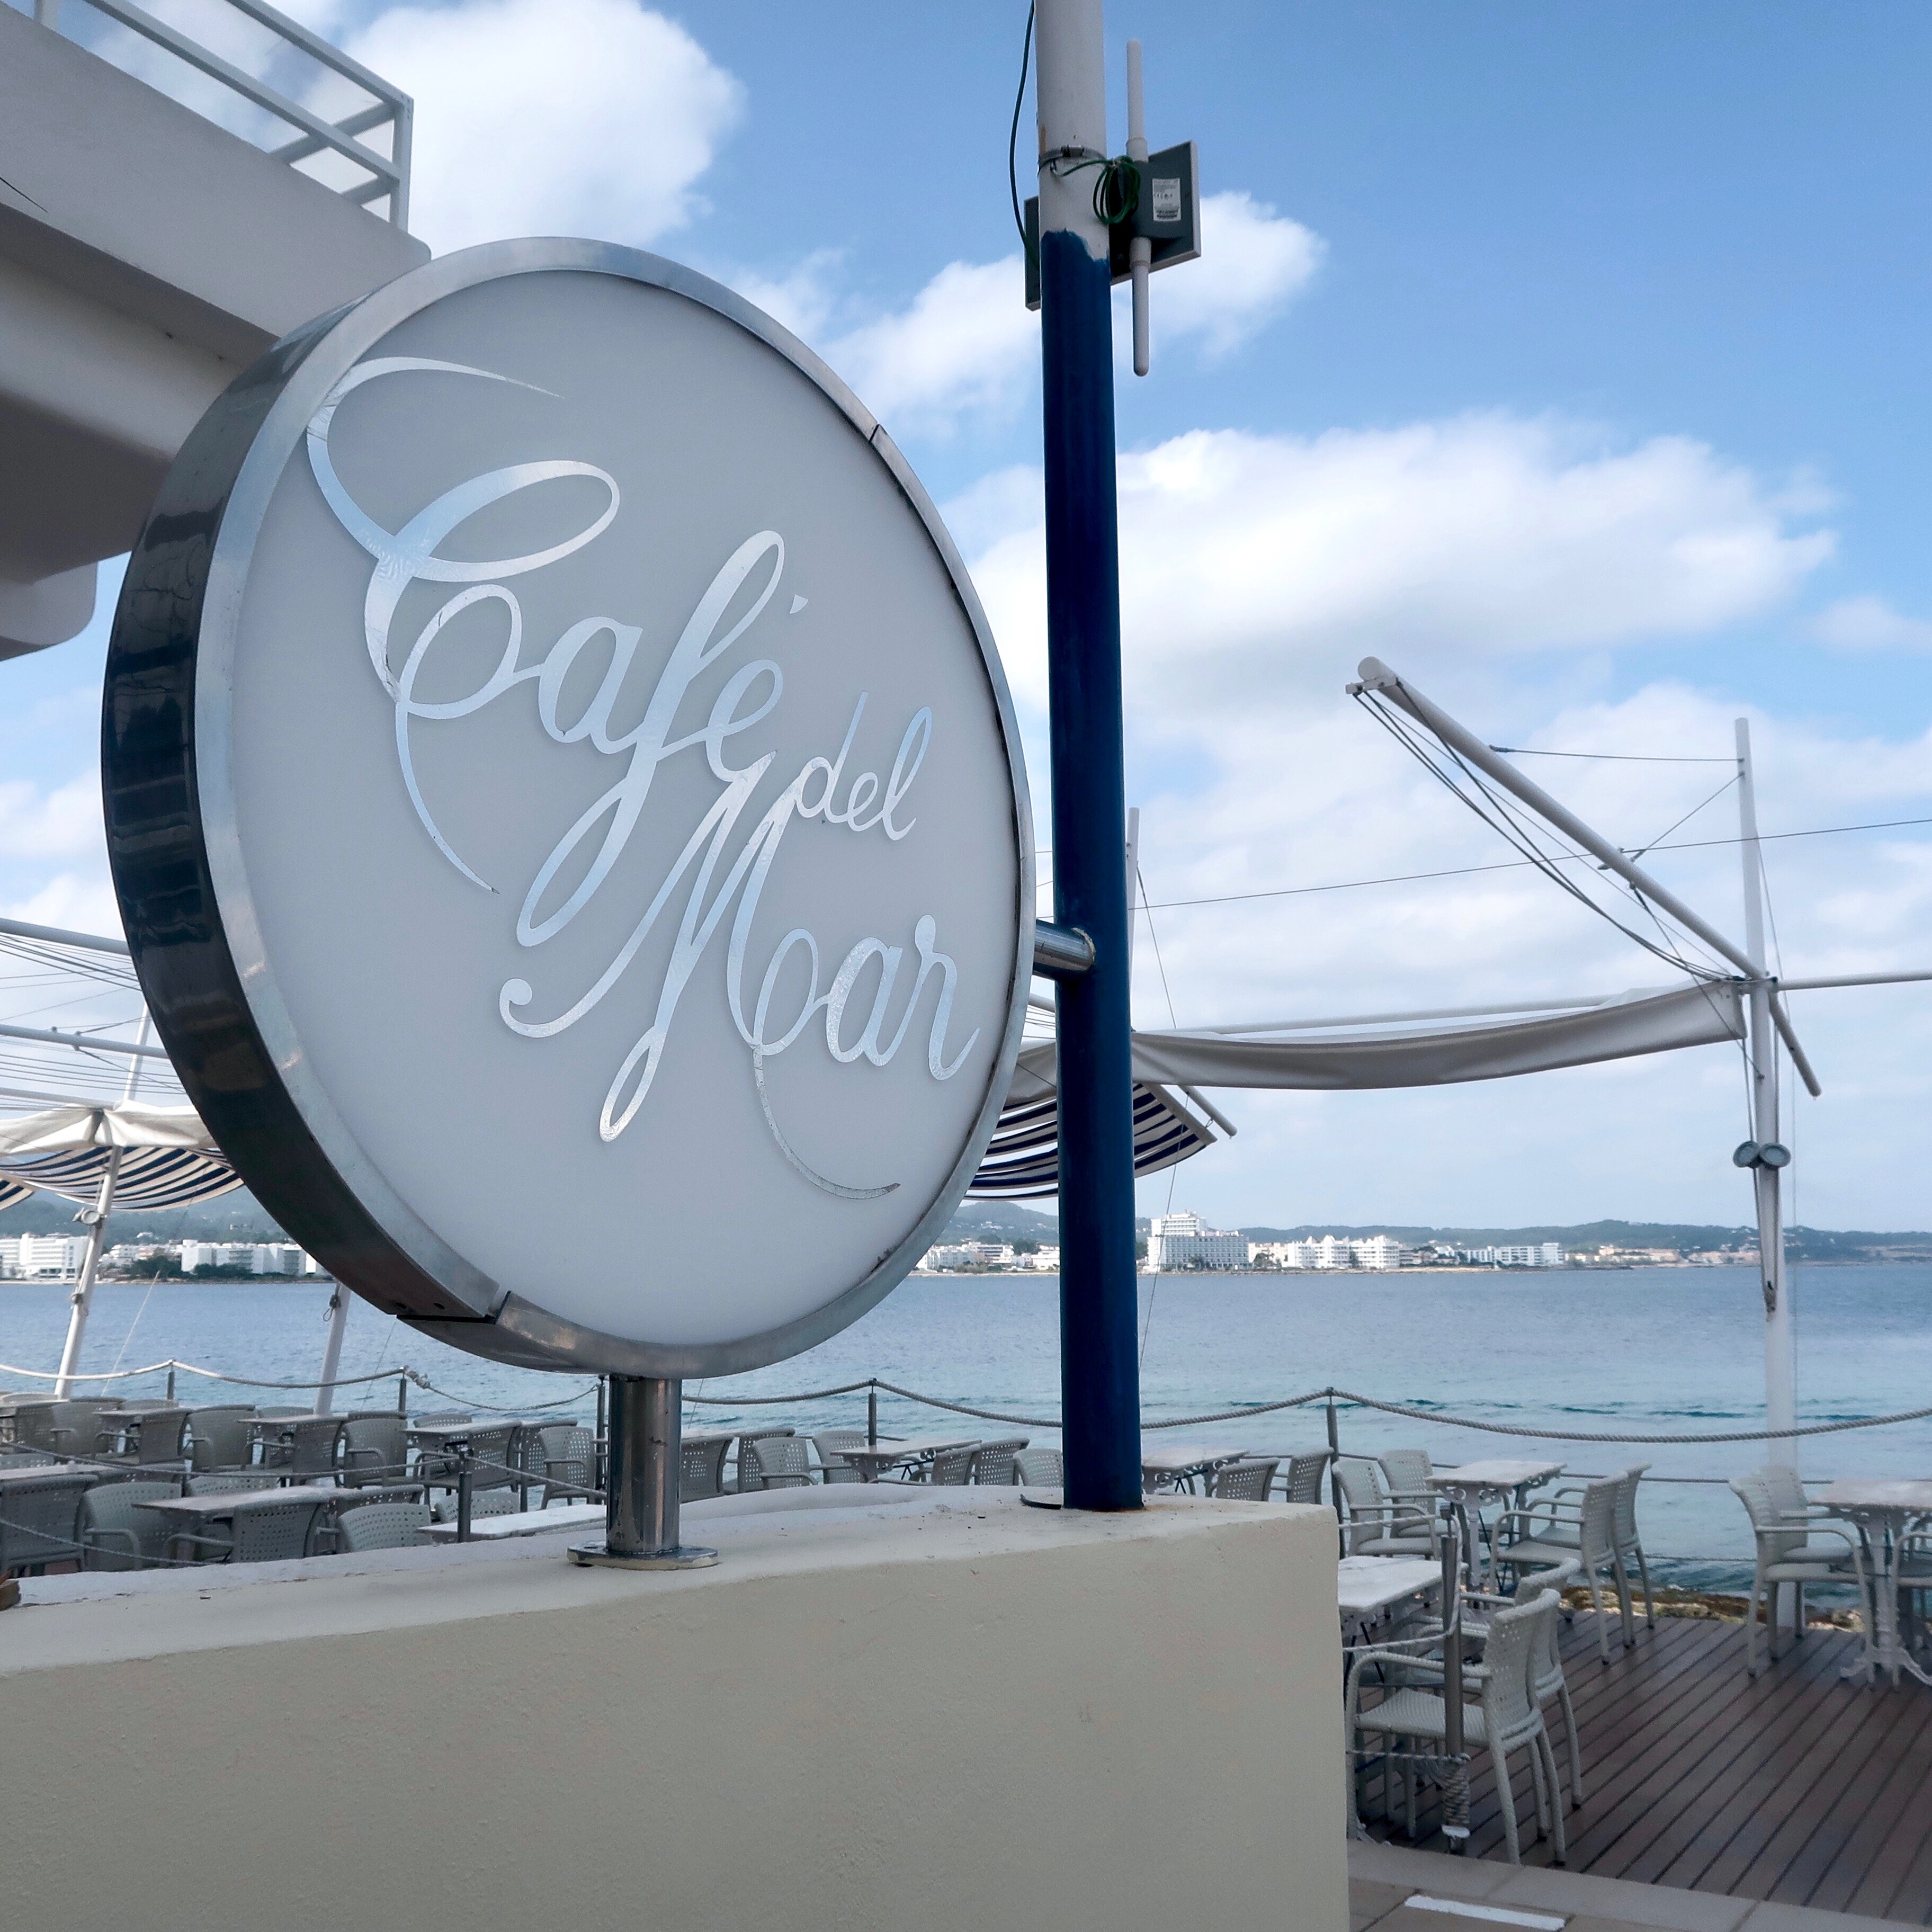 Cafe Del Mar Ibiza | Holiday & Wanderlust Inspo for the White Isle | Where's good to eat in San Antonio Ibiza | Travel tips & guide | Elle Blonde Luxury Lifestyle Destination Blog